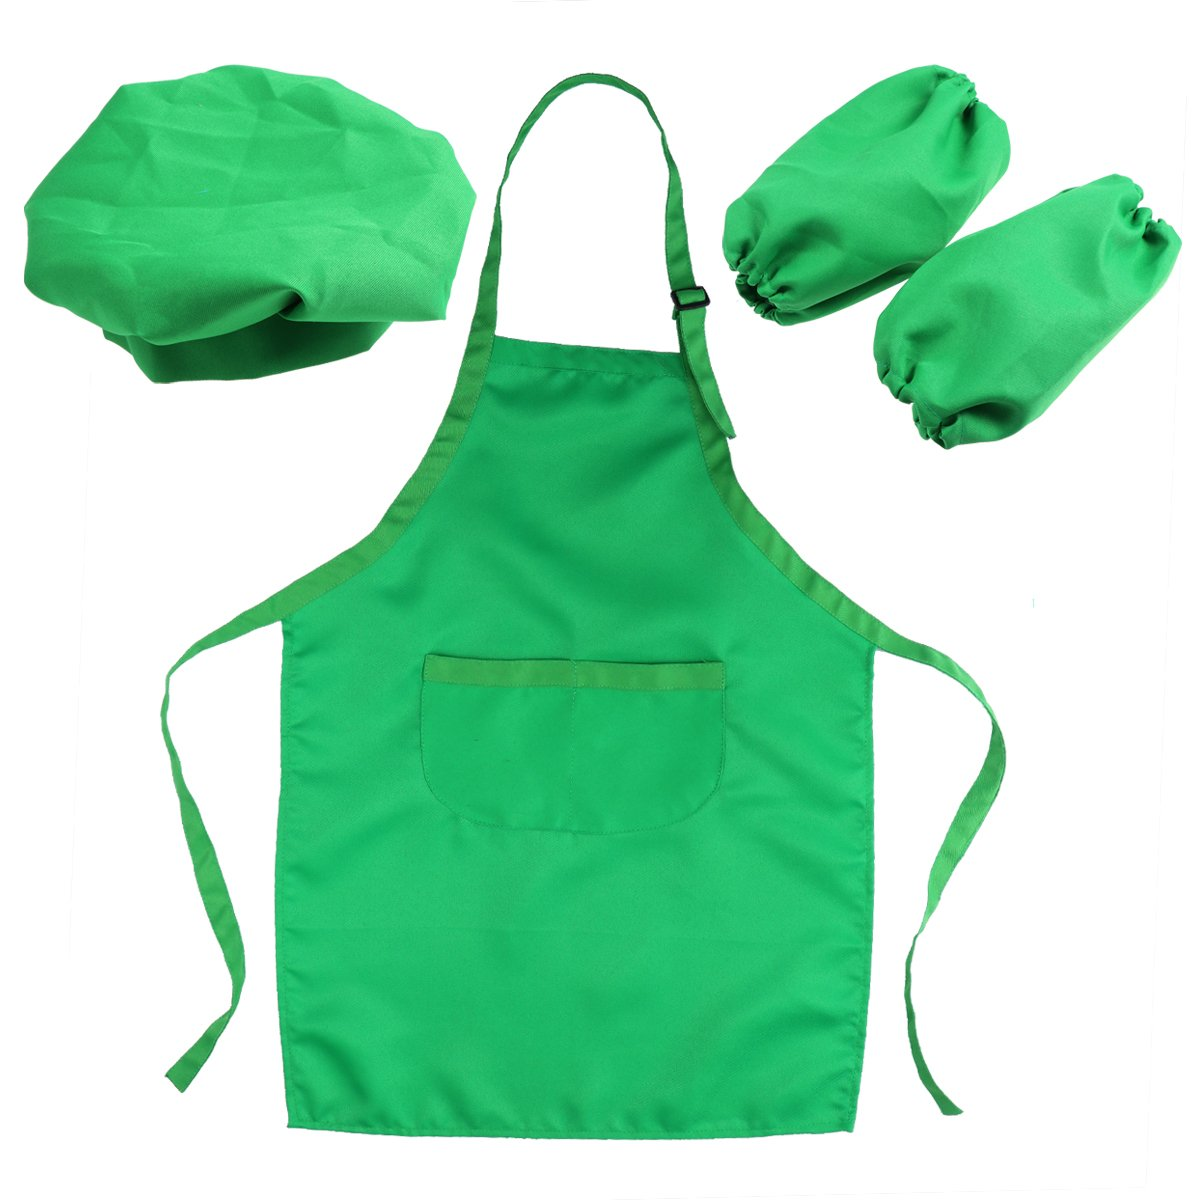 OUNONA Kids' Chef Kit - Kids Kitchen Gift Playset with Chef's Hat Apron Cooking Sleeve for Cooking(Green)